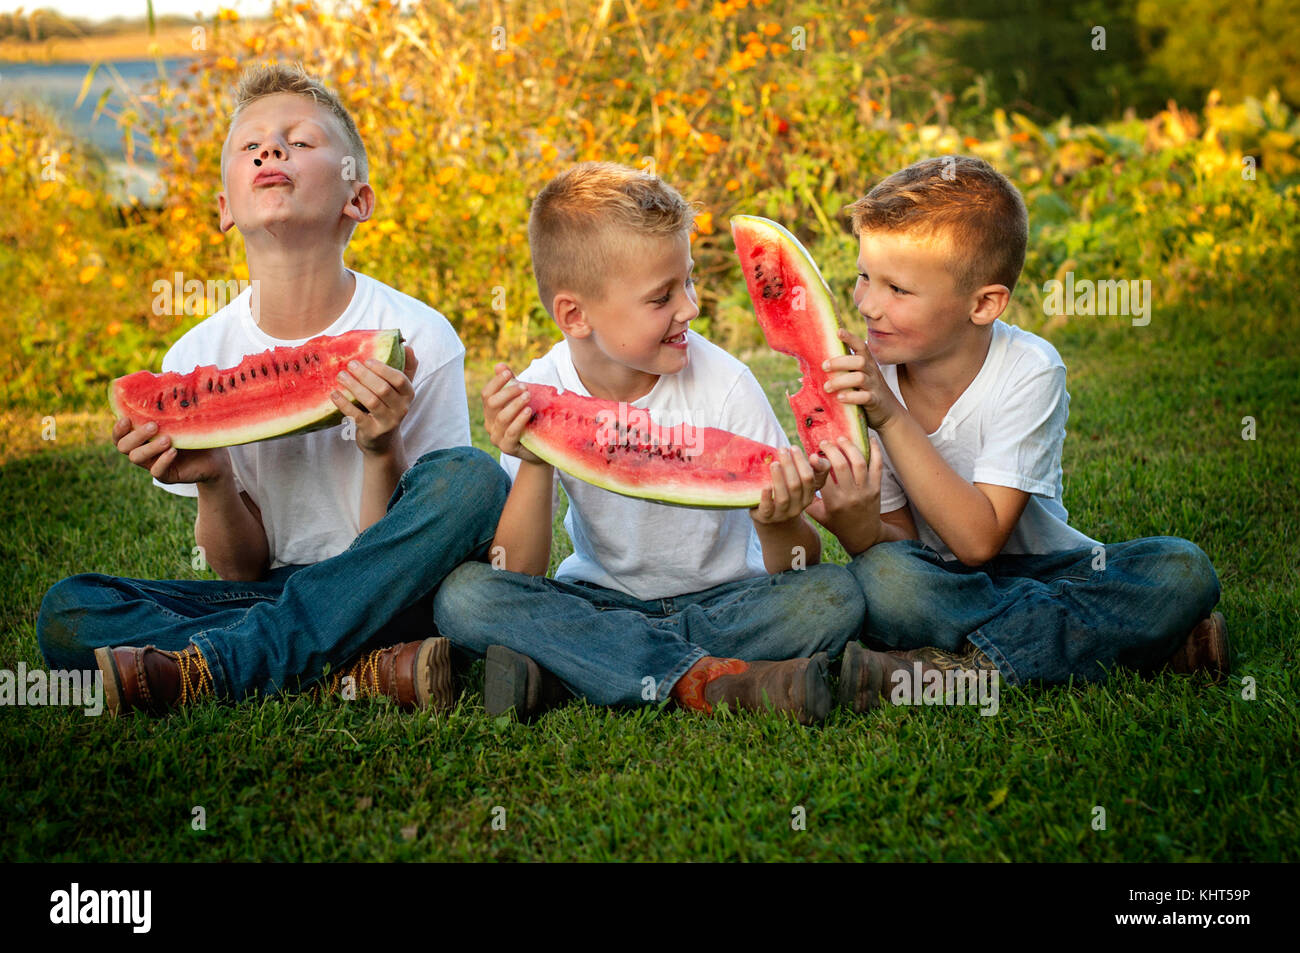 Three brothers eating large slices of watermelon on a farm - Stock Image